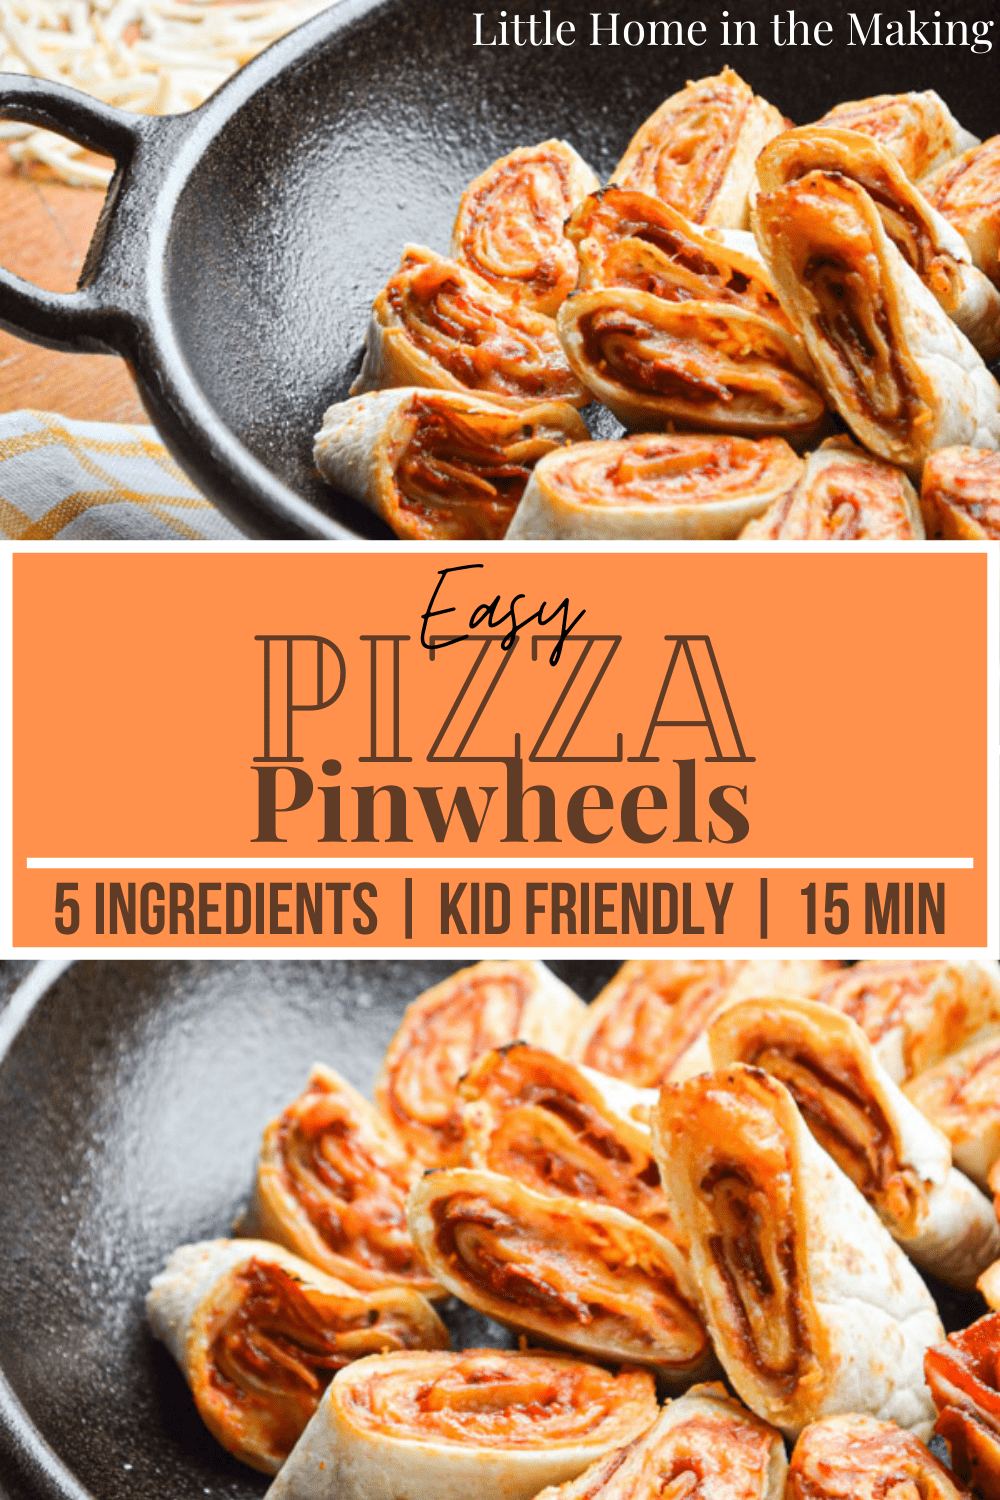 You just have to love these Easy Pizza Pinwheels! Just 5 ingredients and 20 minutes delivers a quick lunch or an appetizer to accompany a fun meal. Kid friendly too!